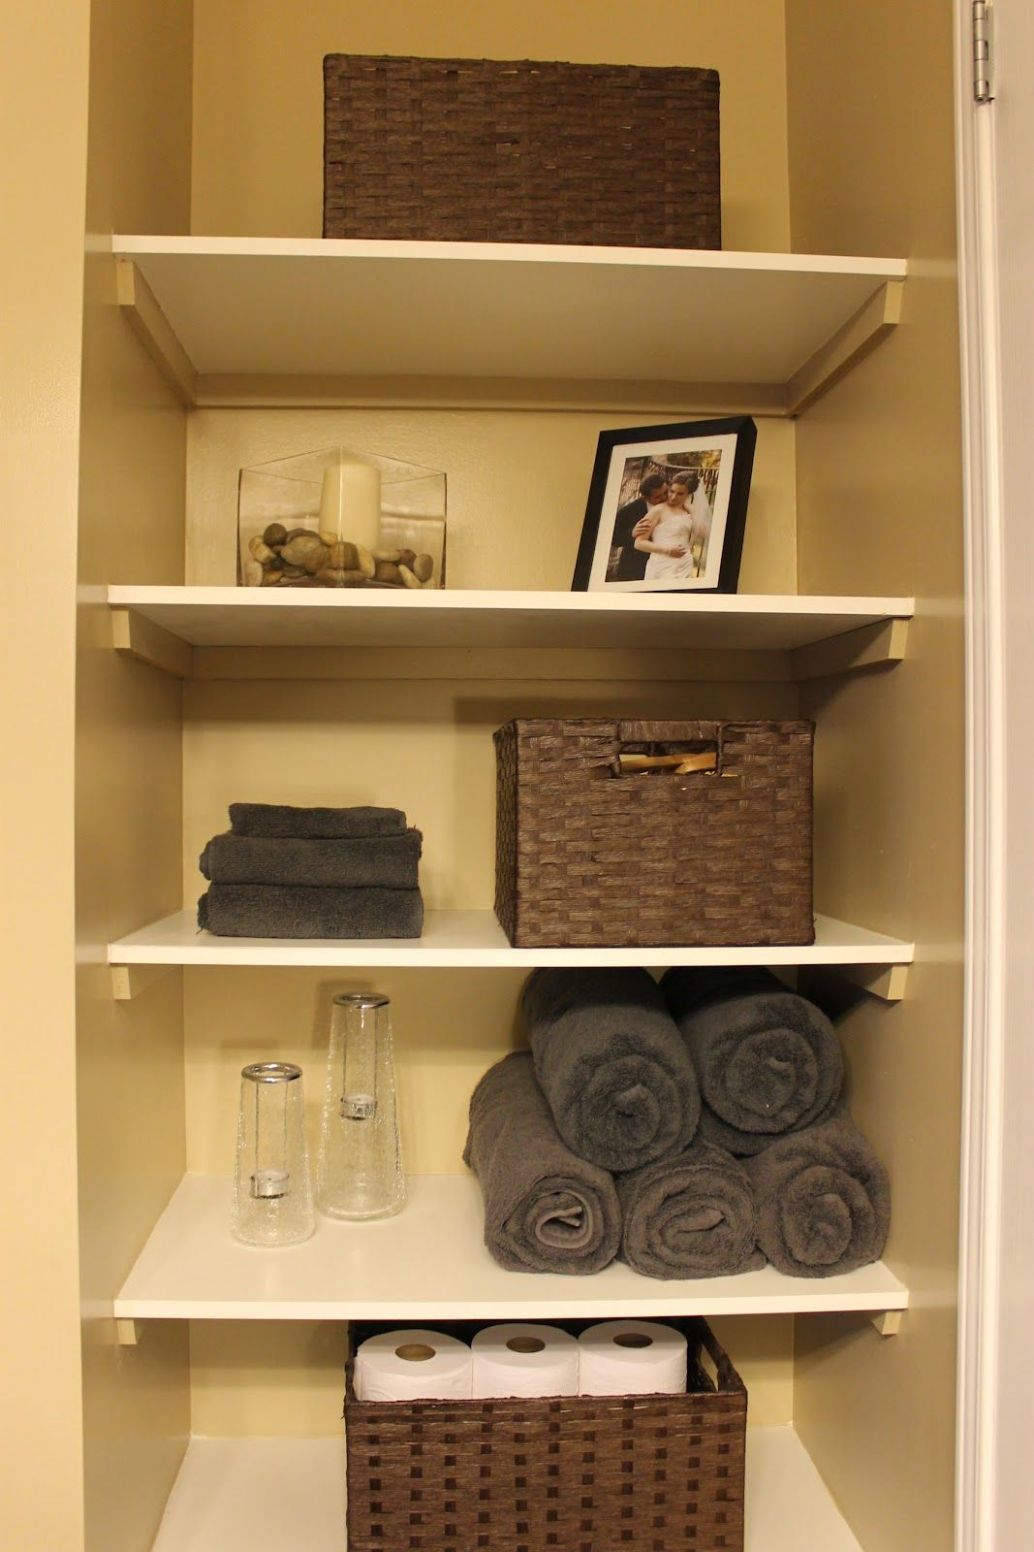 DIY: Organizing Open Shelving in a Bathroom | Small bathroom ...